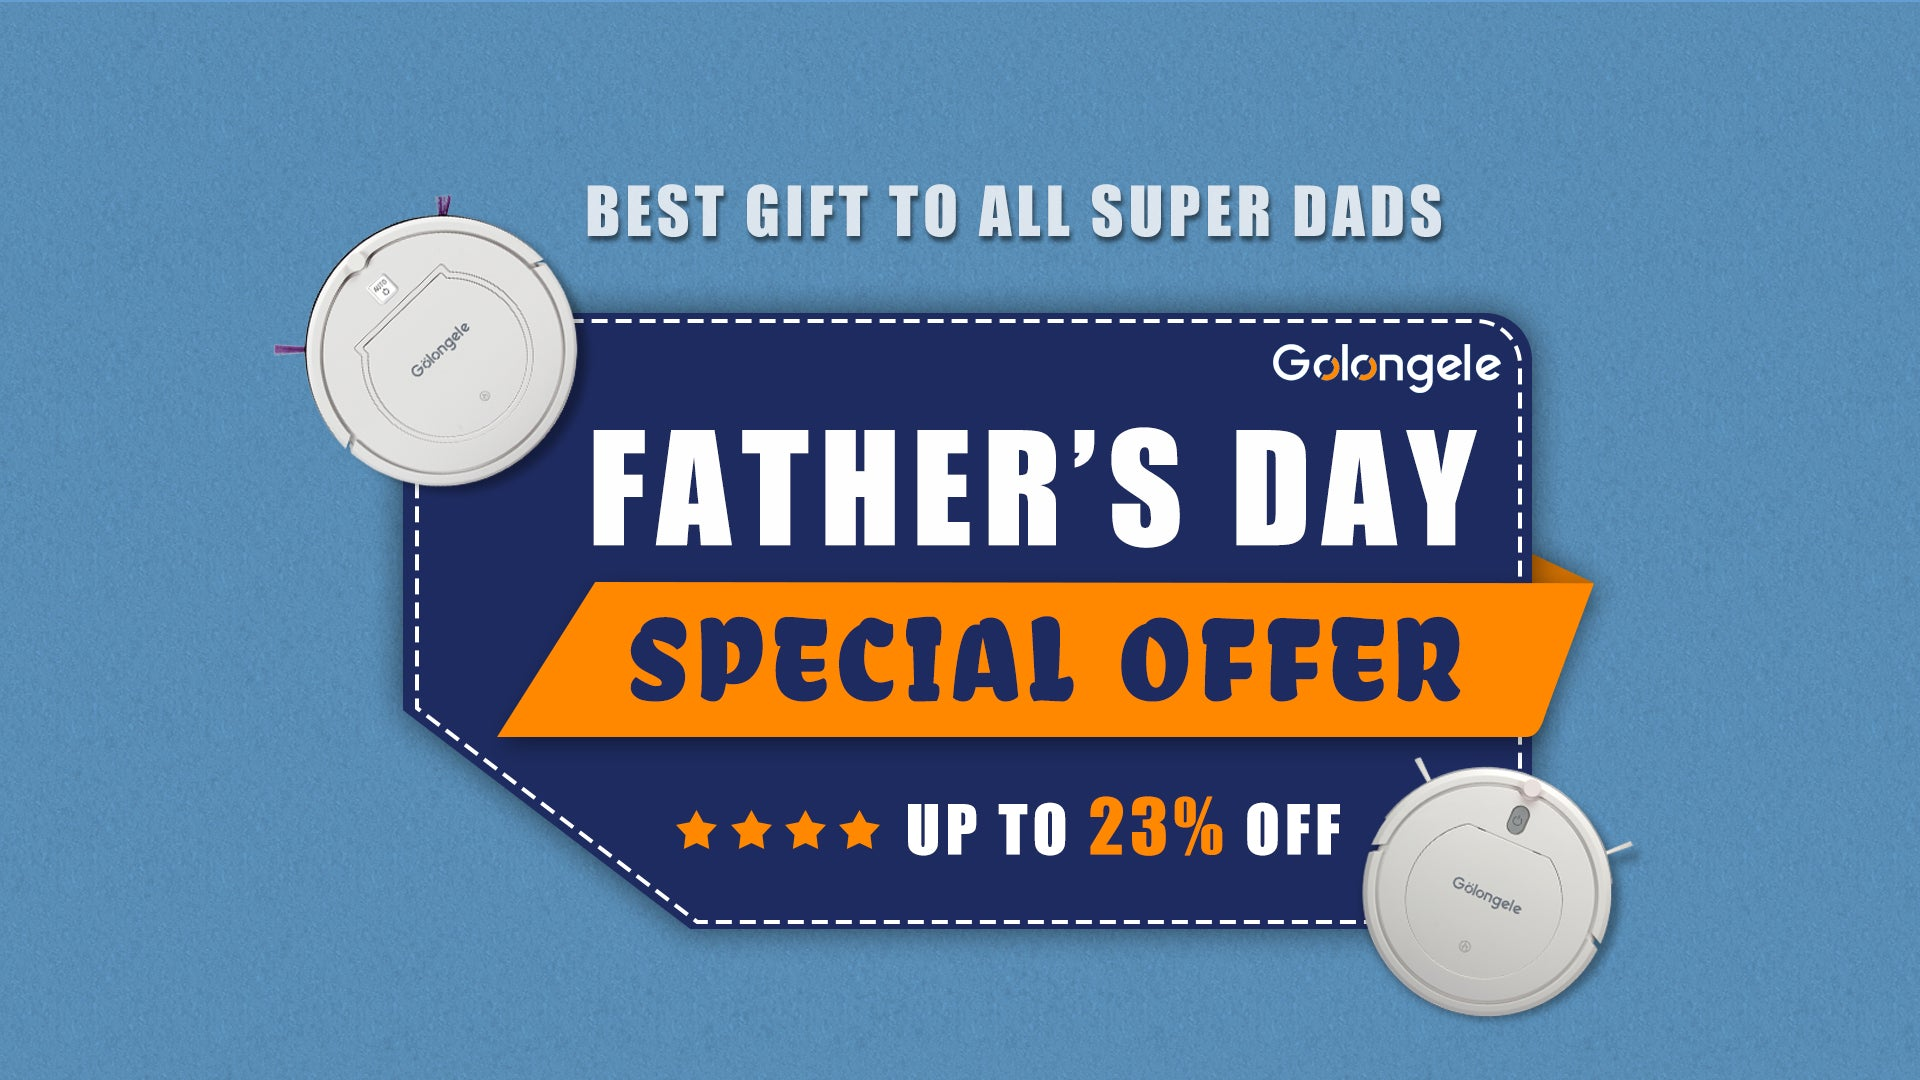 Big deals for father's day